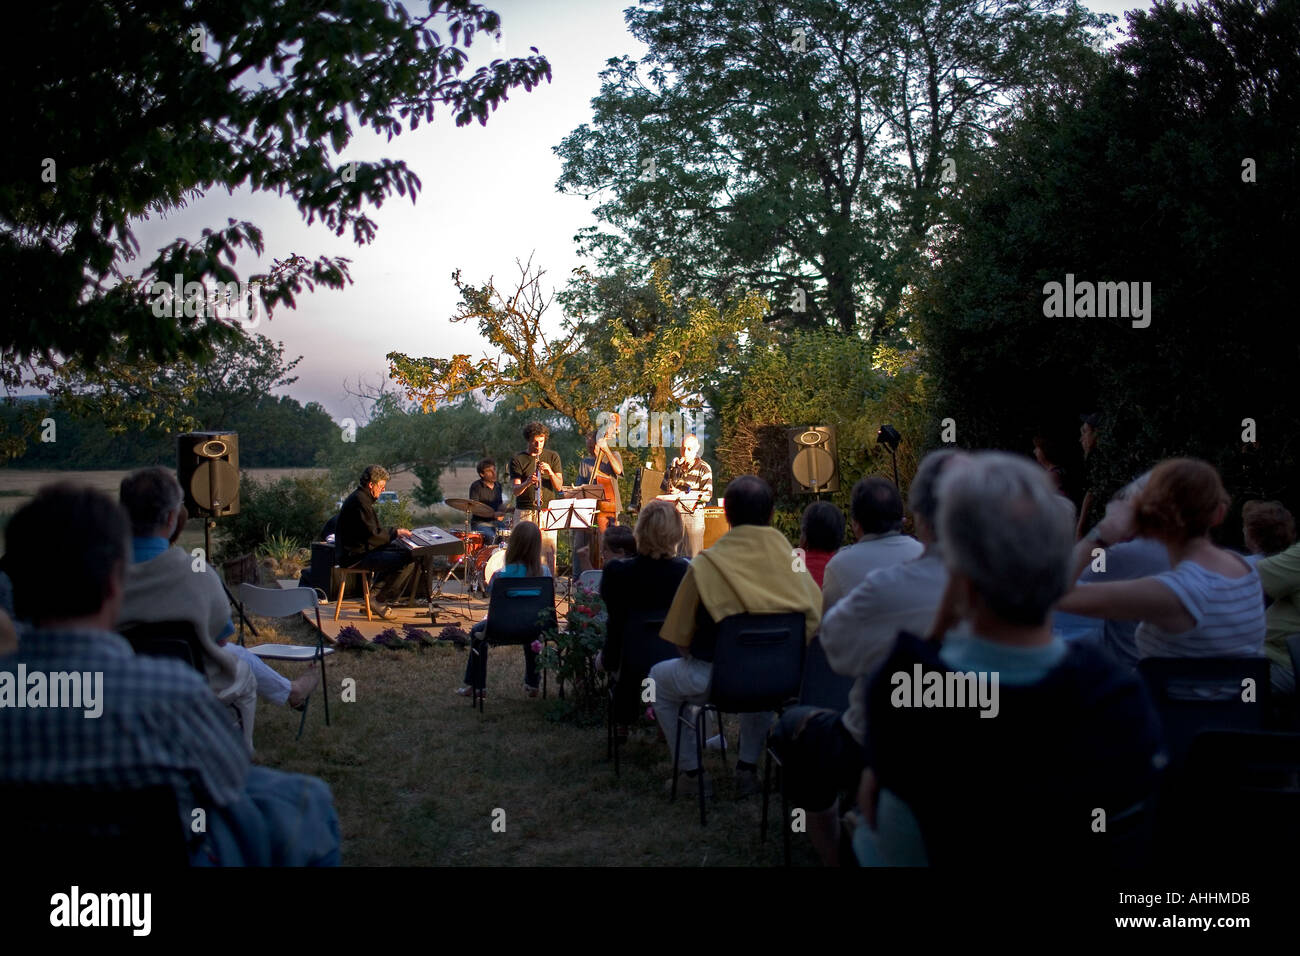 NIGHT JAZZ CONCERT AT THE FARM PROVENCE FRANCE - Stock Image